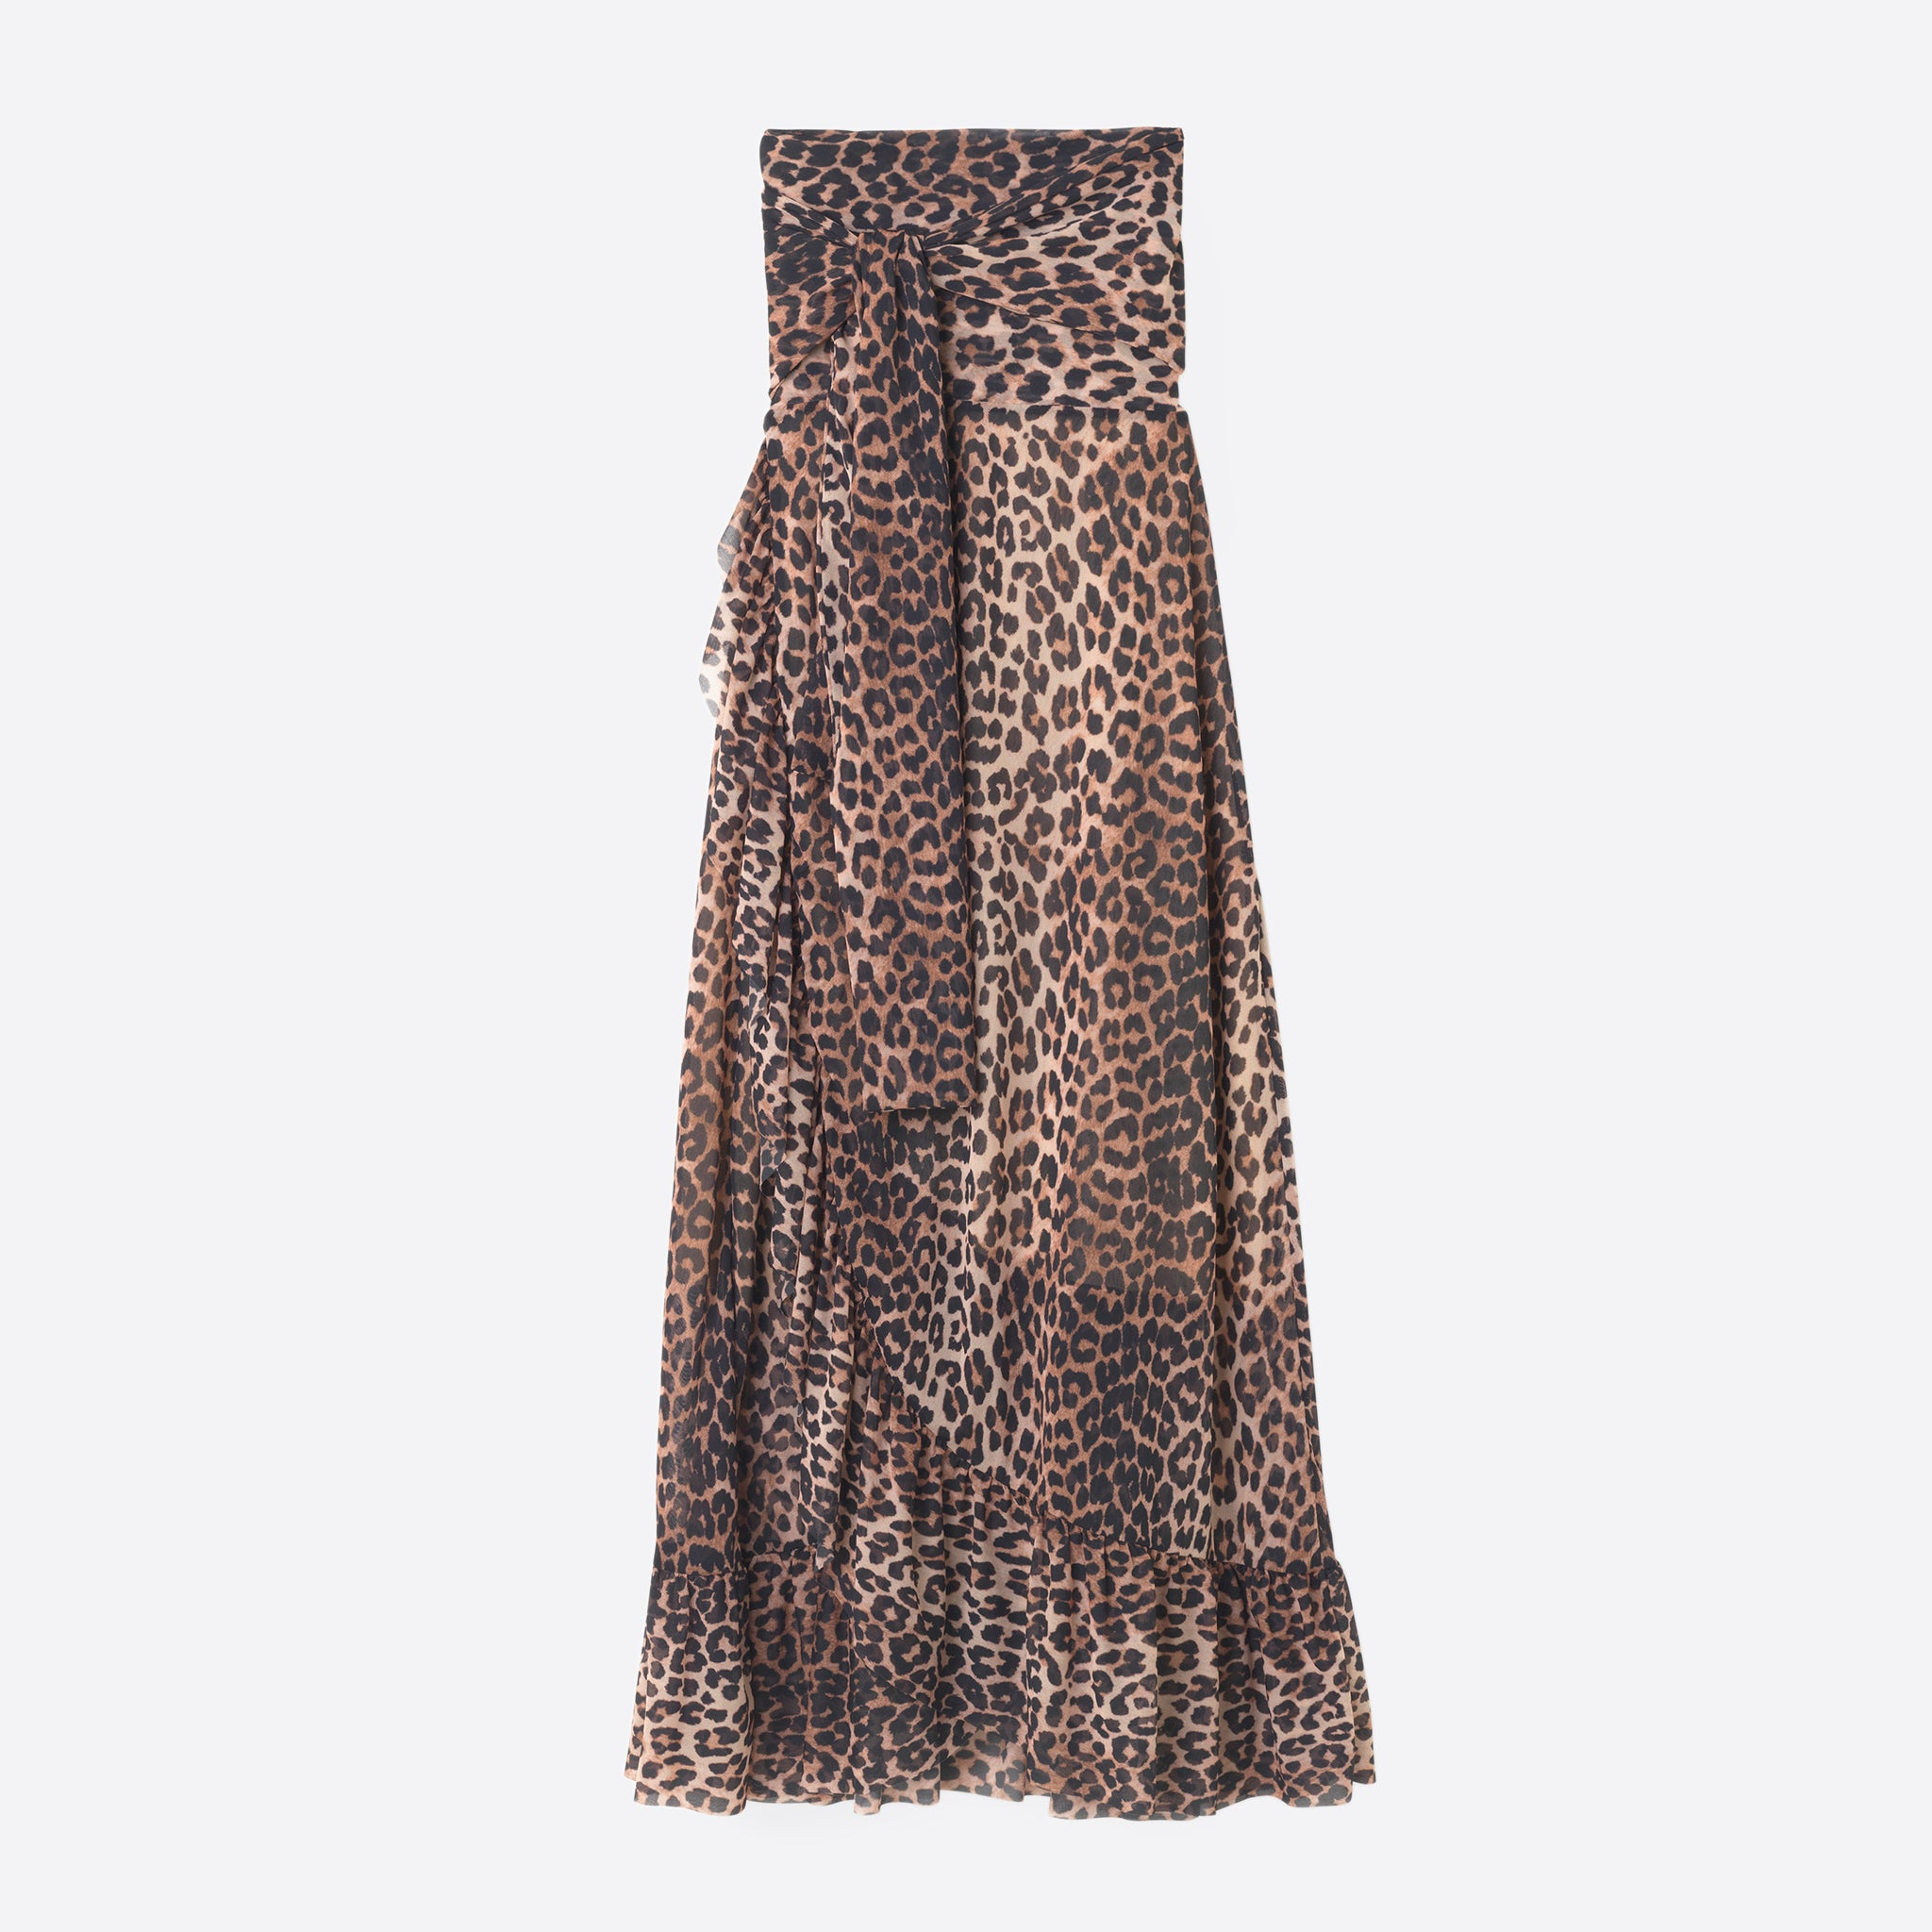 Ganni Tilden Mesh Skirt in Leopard